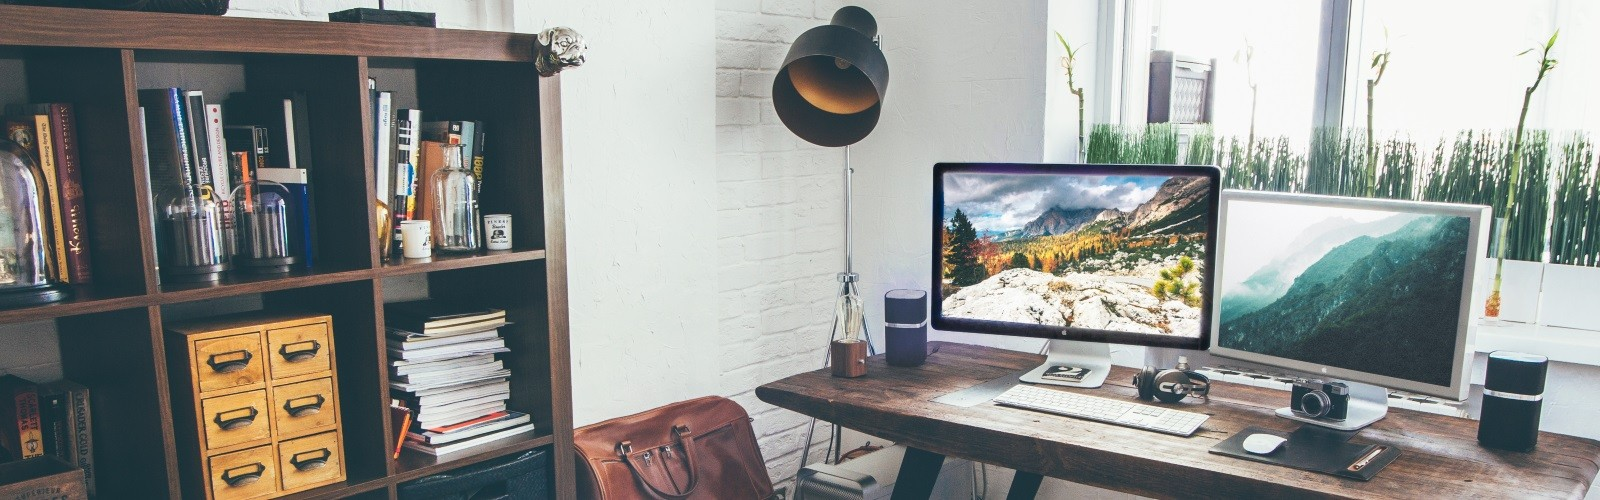 How to design a healthy home office